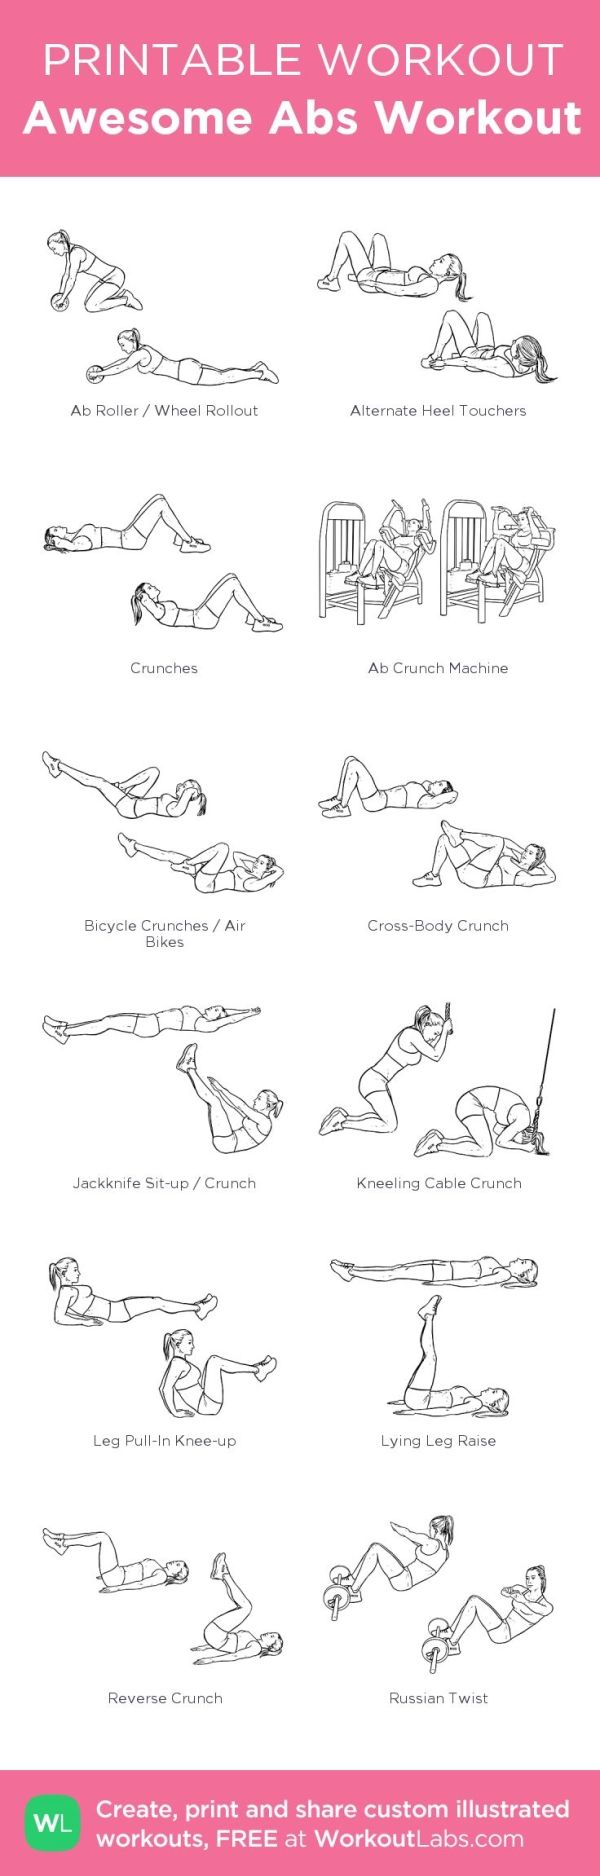 Awesome Abs Workout: my custom printable workout by @WorkoutLabs #workoutlabs #customworkout by dorthy